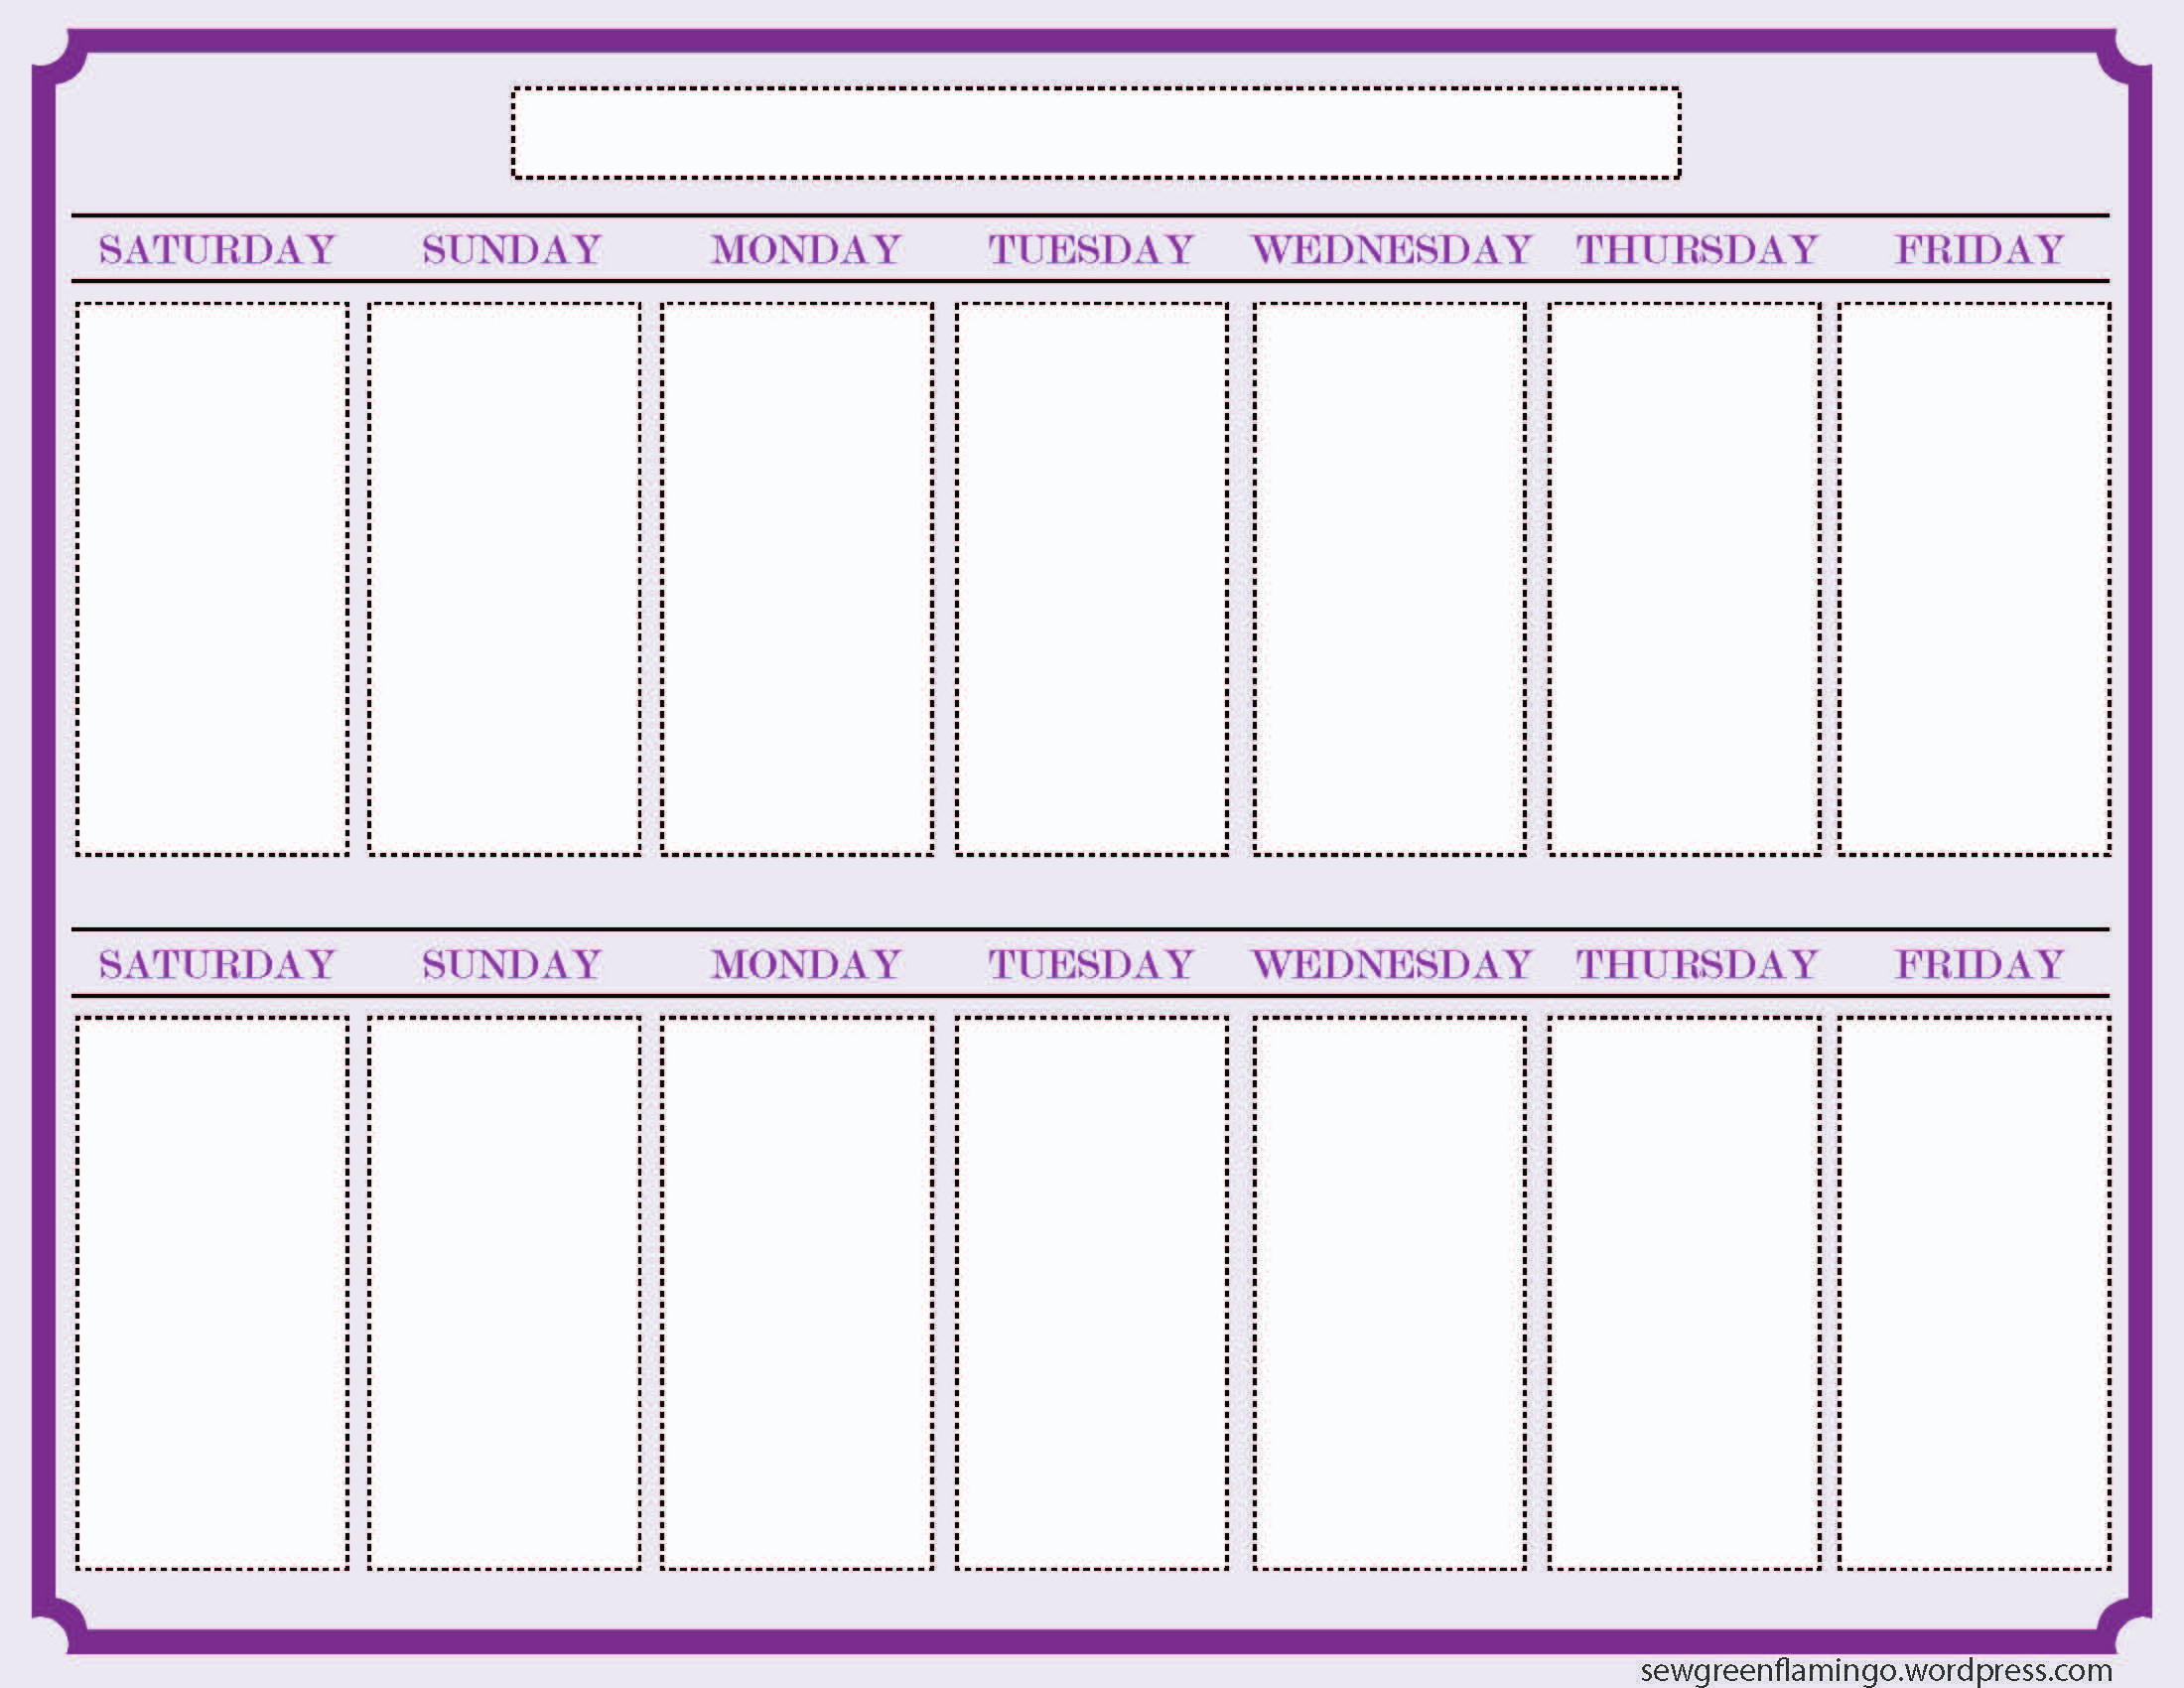 Getting Organized! 2-Week Planner | What I've Been Making - 2013 with 1 Week Blank Calendar Template